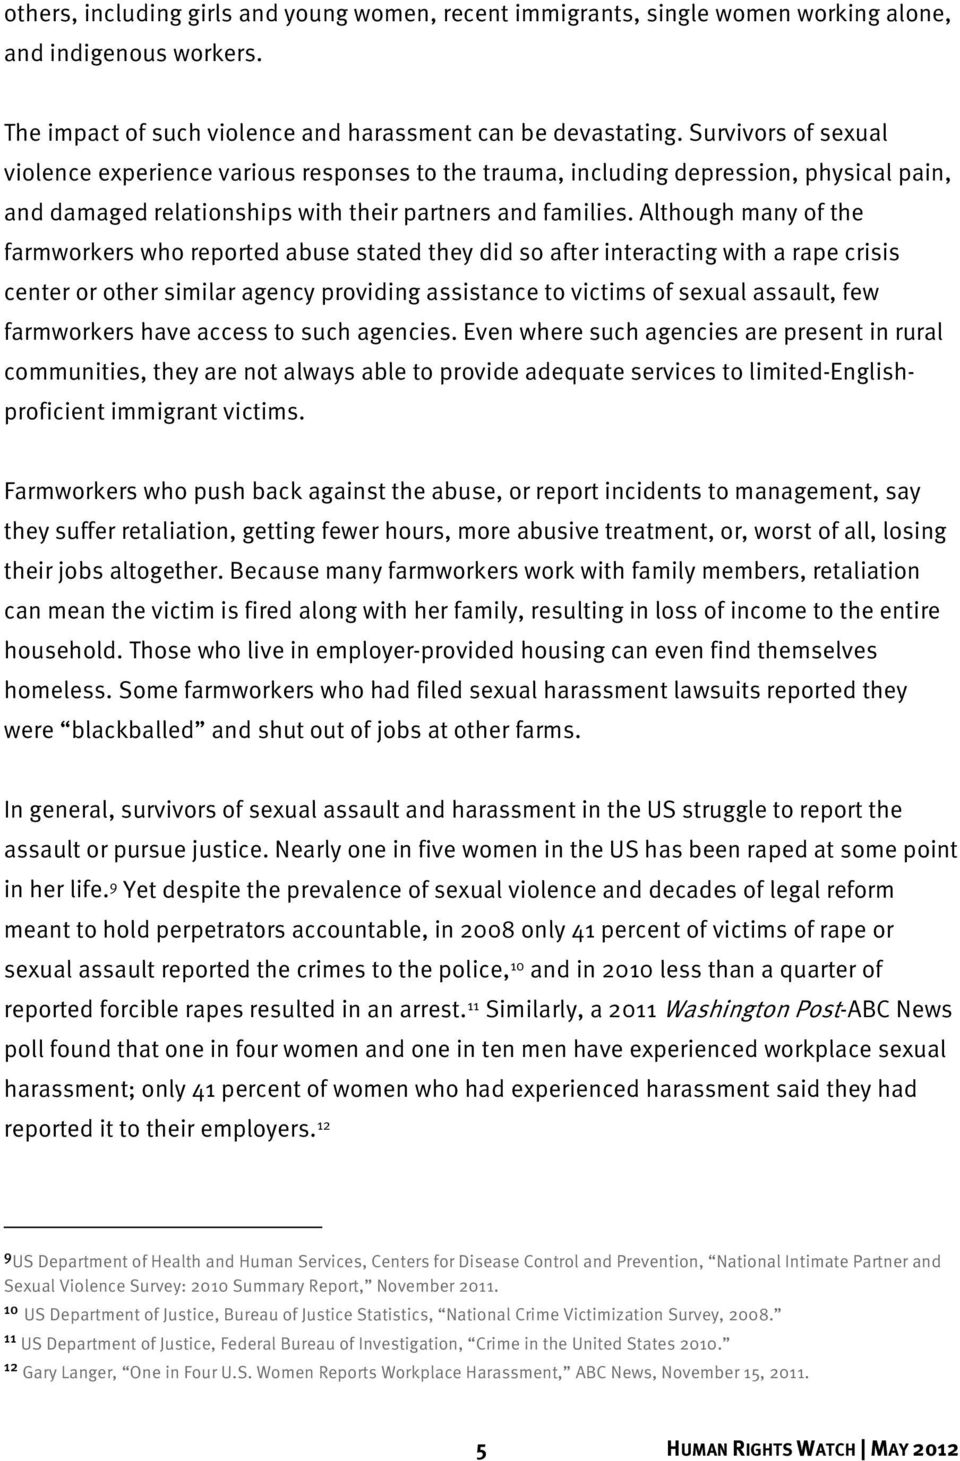 Although many of the farmworkers who reported abuse stated they did so after interacting with a rape crisis center or other similar agency providing assistance to victims of sexual assault, few